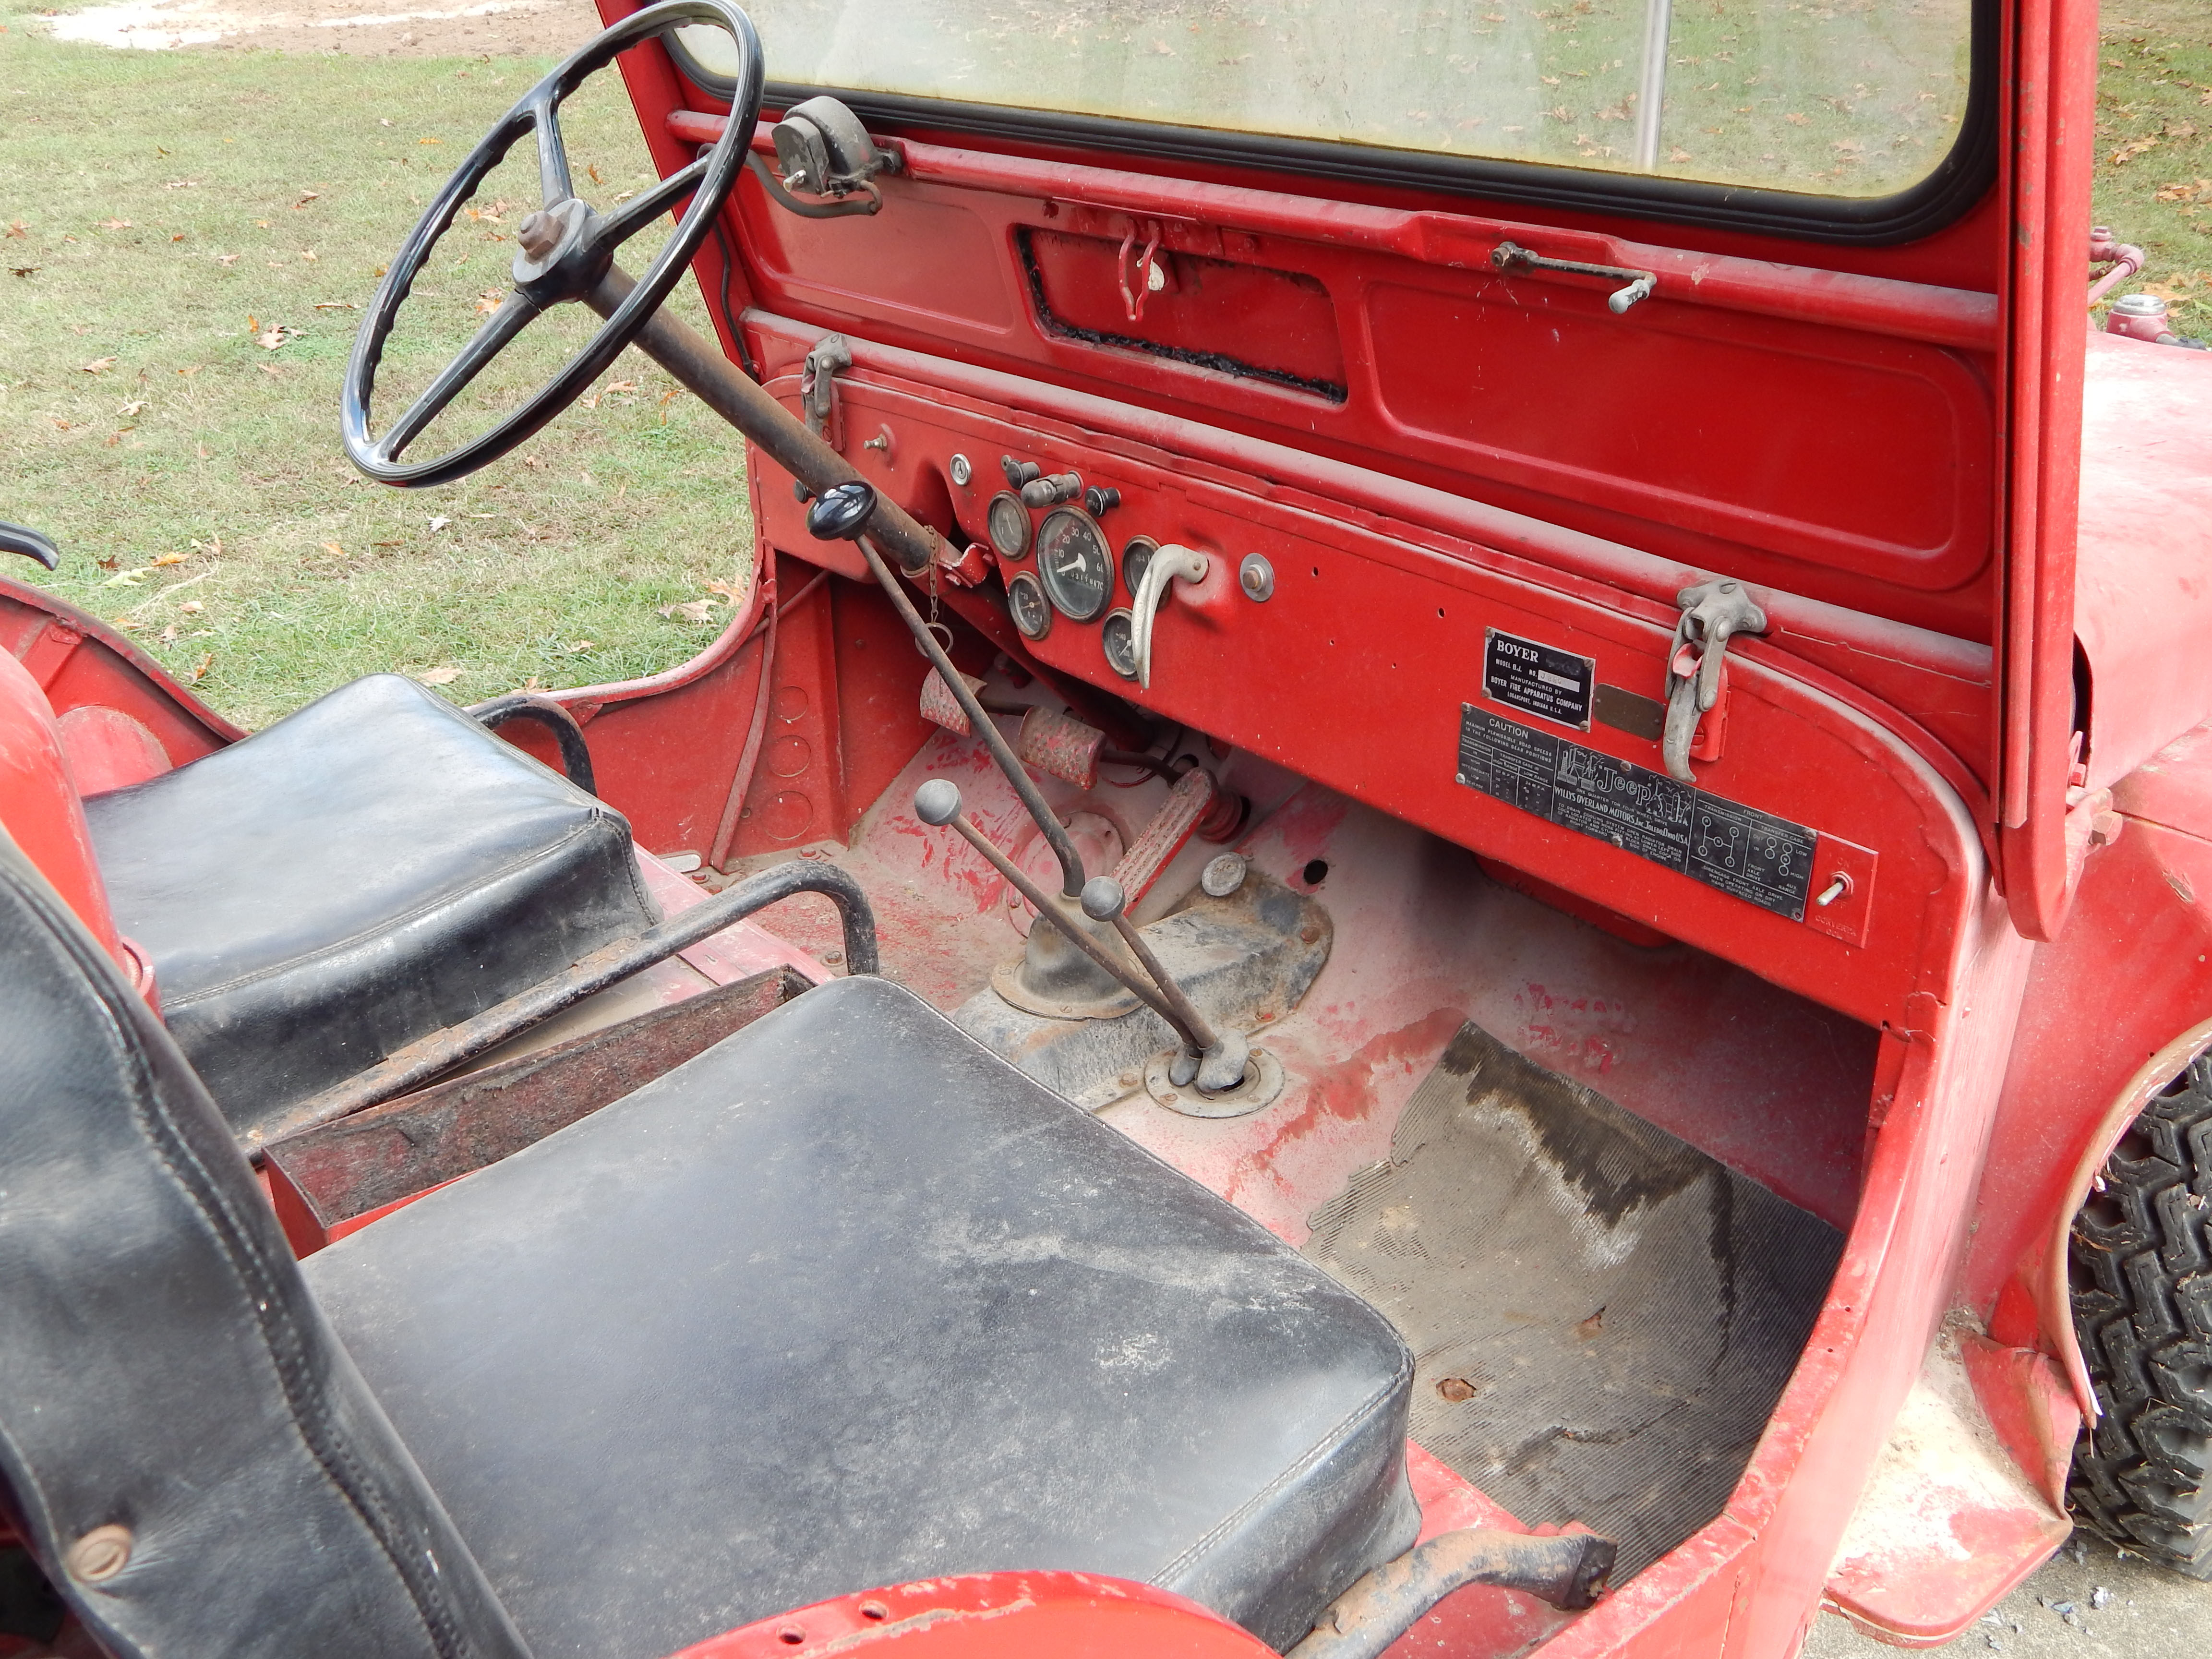 Truck Accessories Store >> 1949 Willys CJ3A Fire Engine Jeep. Boyer Conversion. Very ...